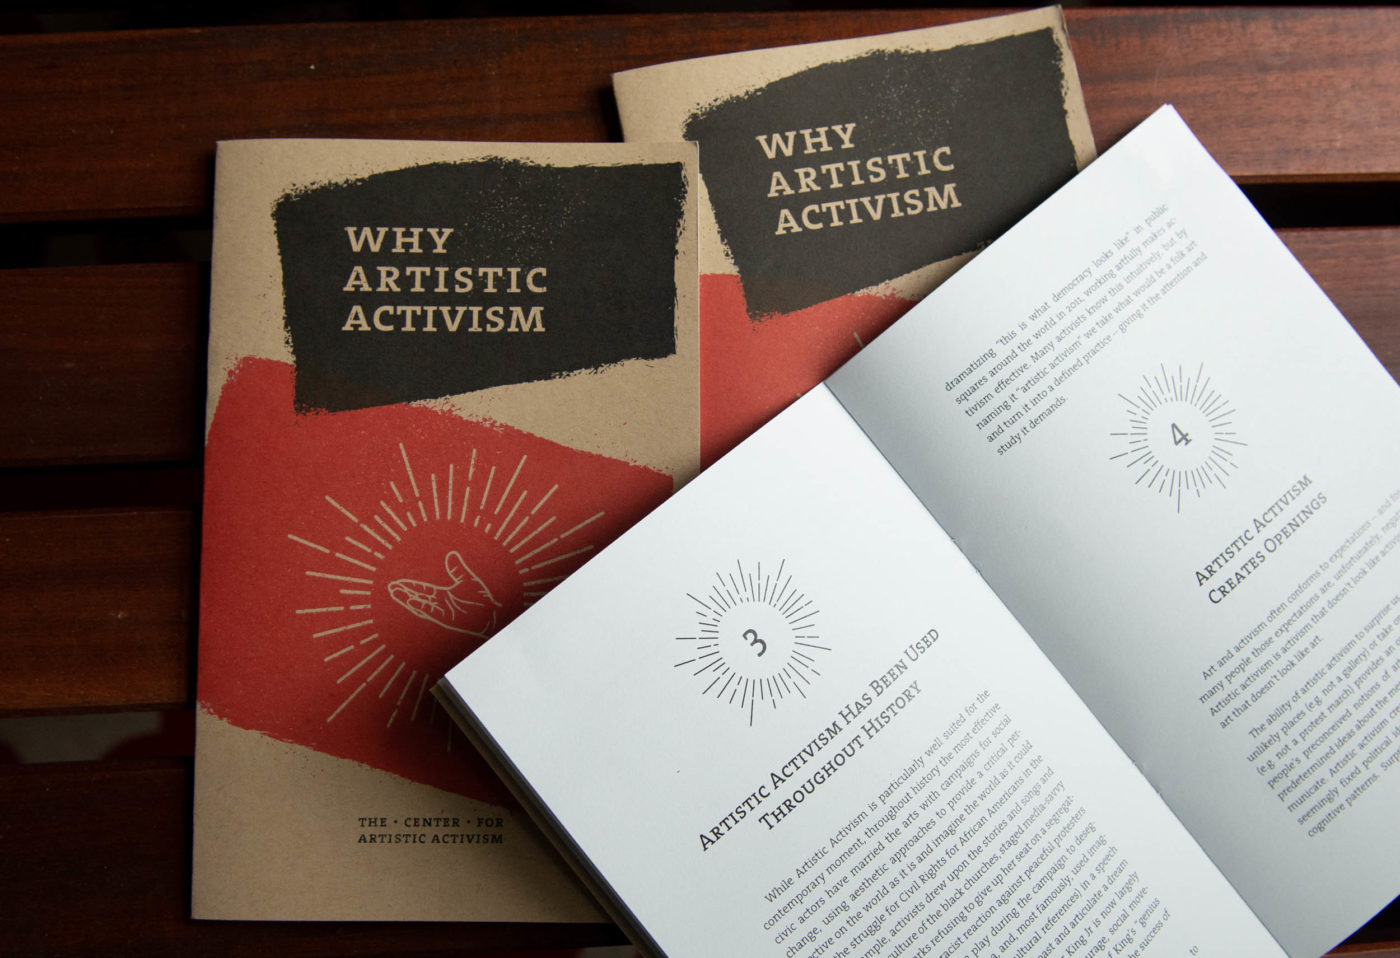 Publications of the Center for Artistic Activism